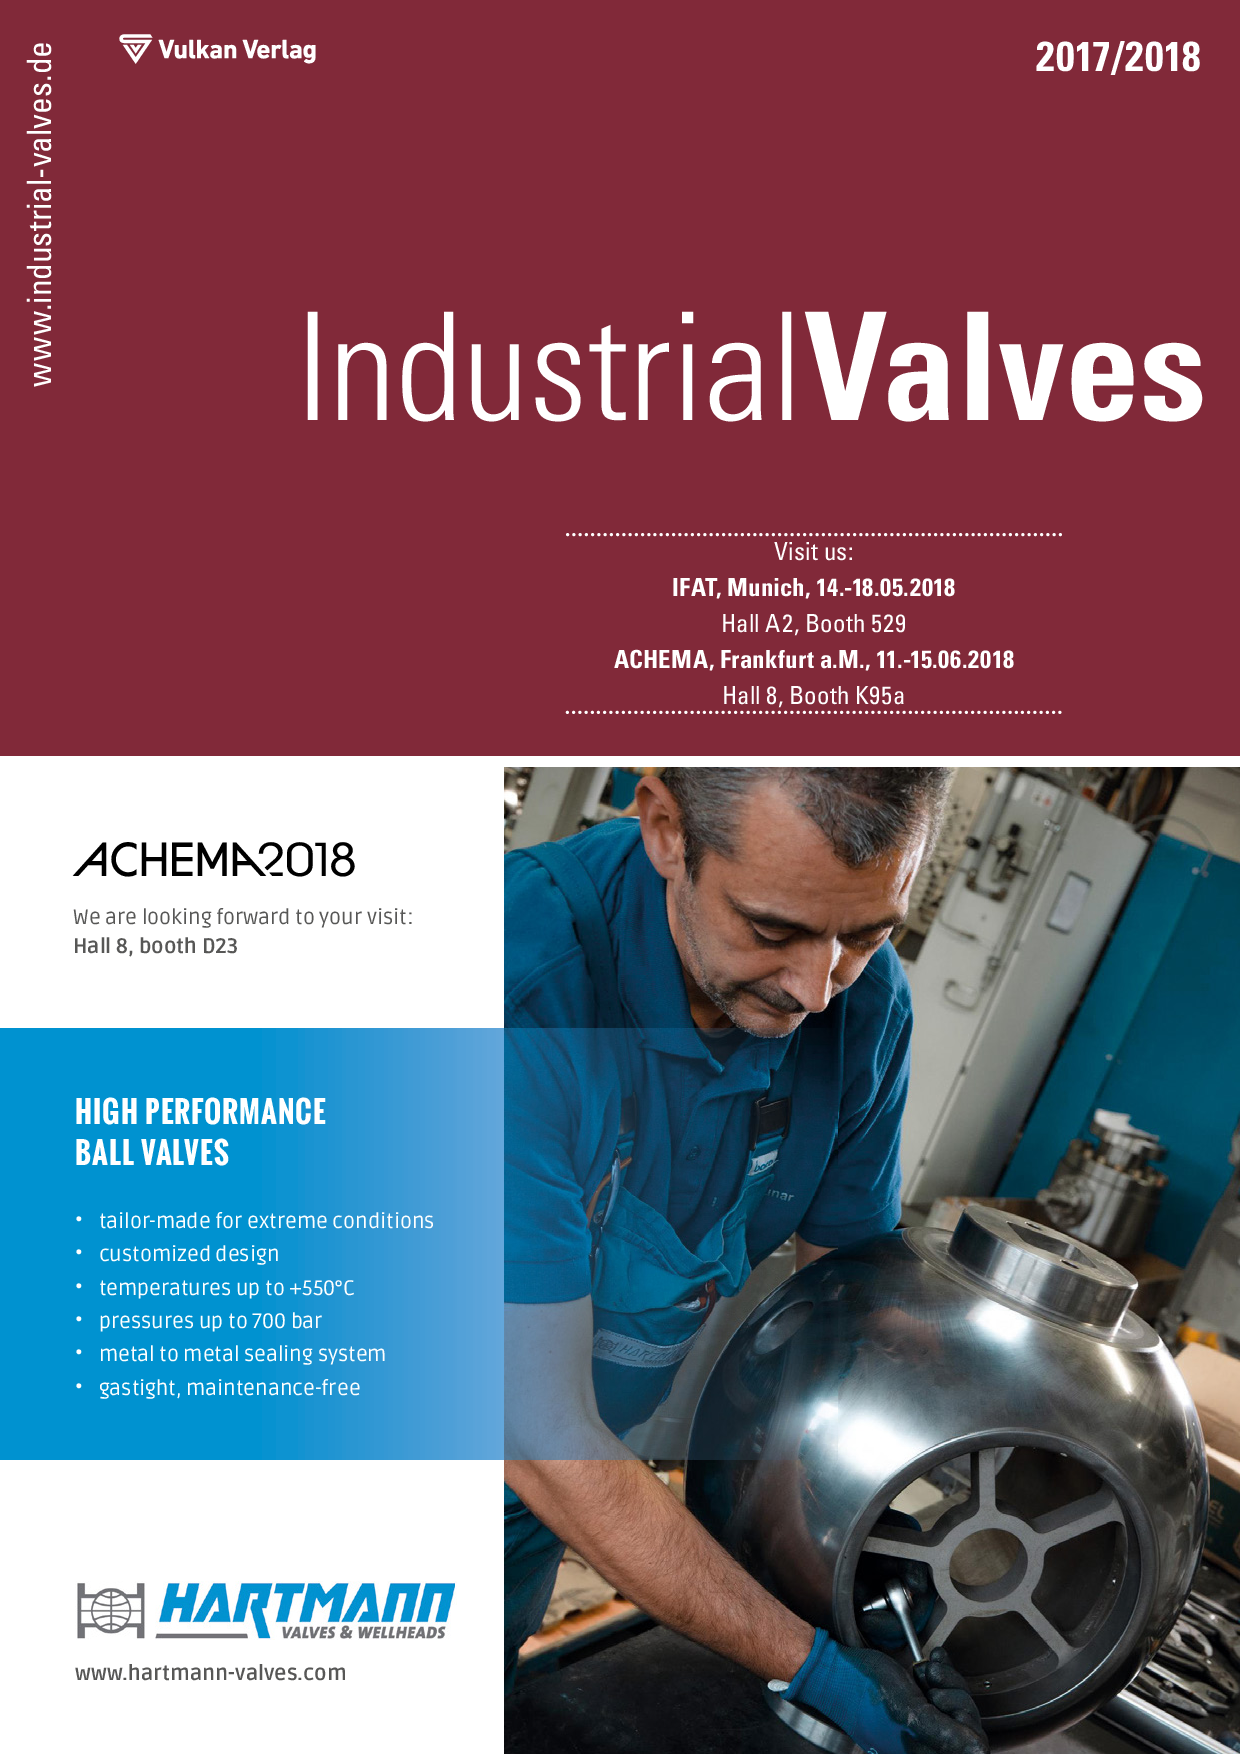 Industrial Valves – 2017/2018